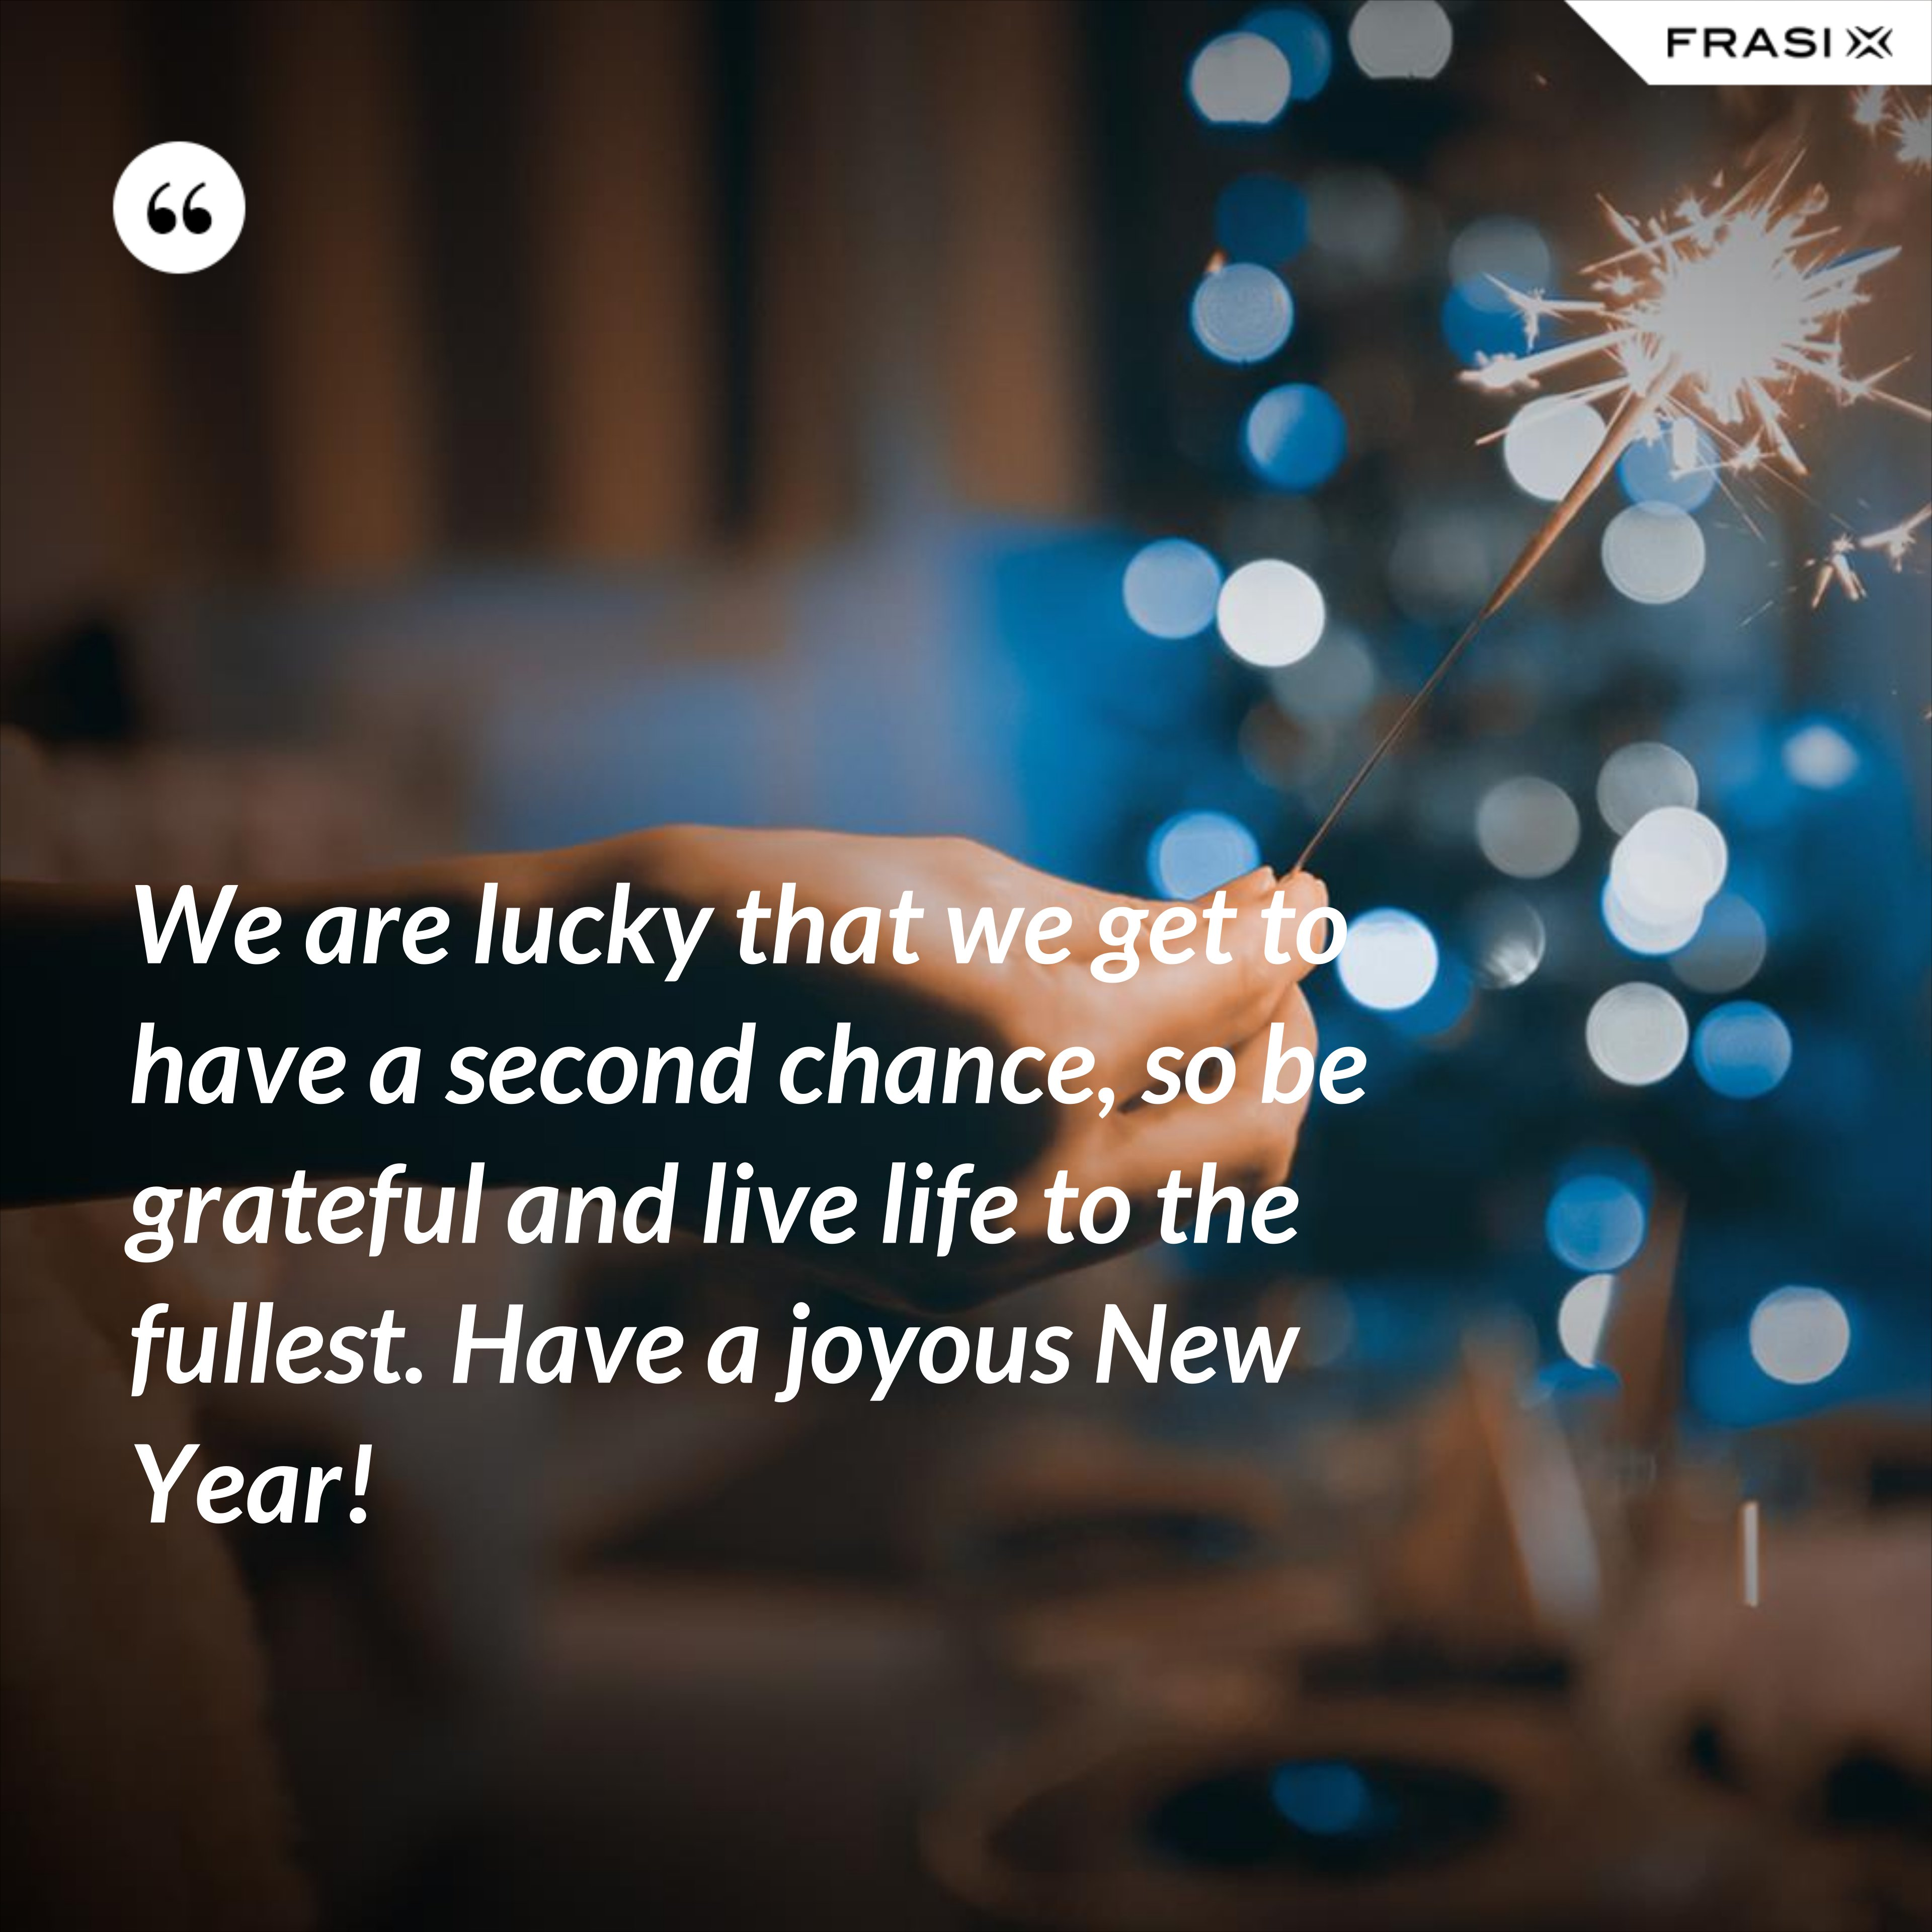 We are lucky that we get to have a second chance, so be grateful and live life to the fullest. Have a joyous New Year! - Anonimo